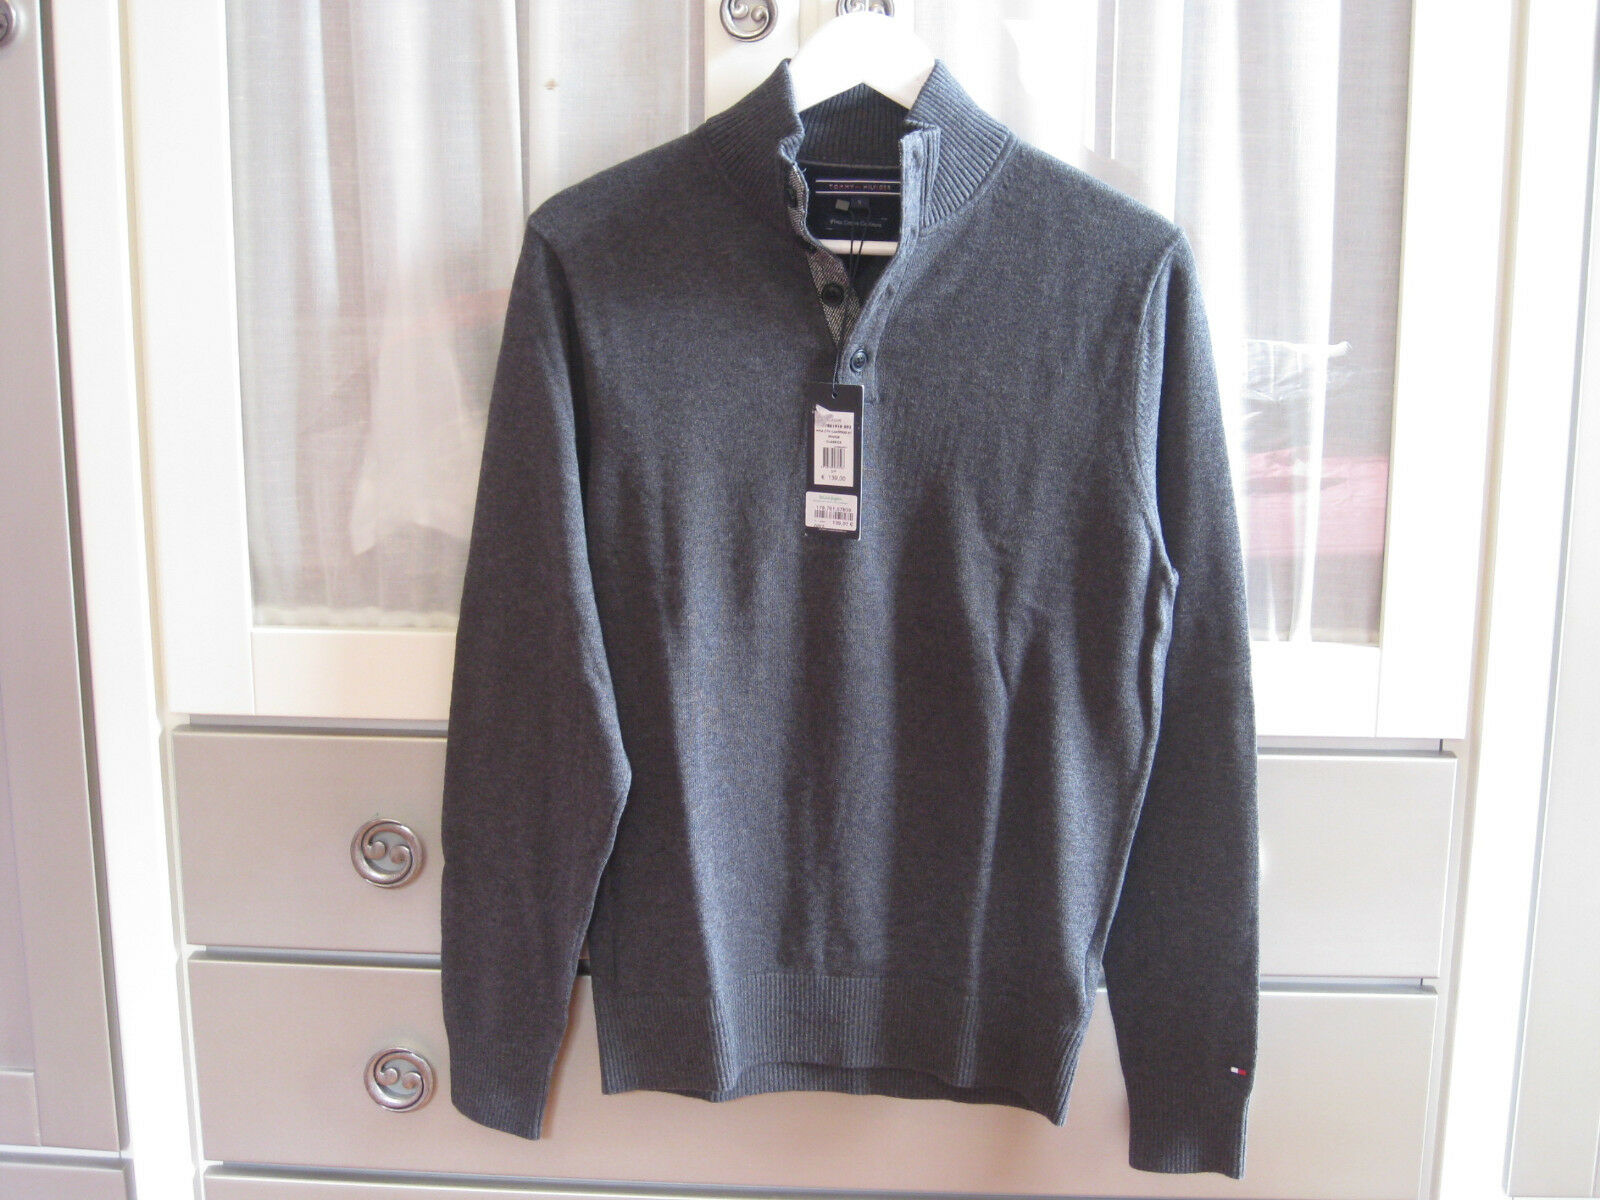 JERSEY TOMMY HILFIGER PIMA COTTON CASHMERE PULLOVER S